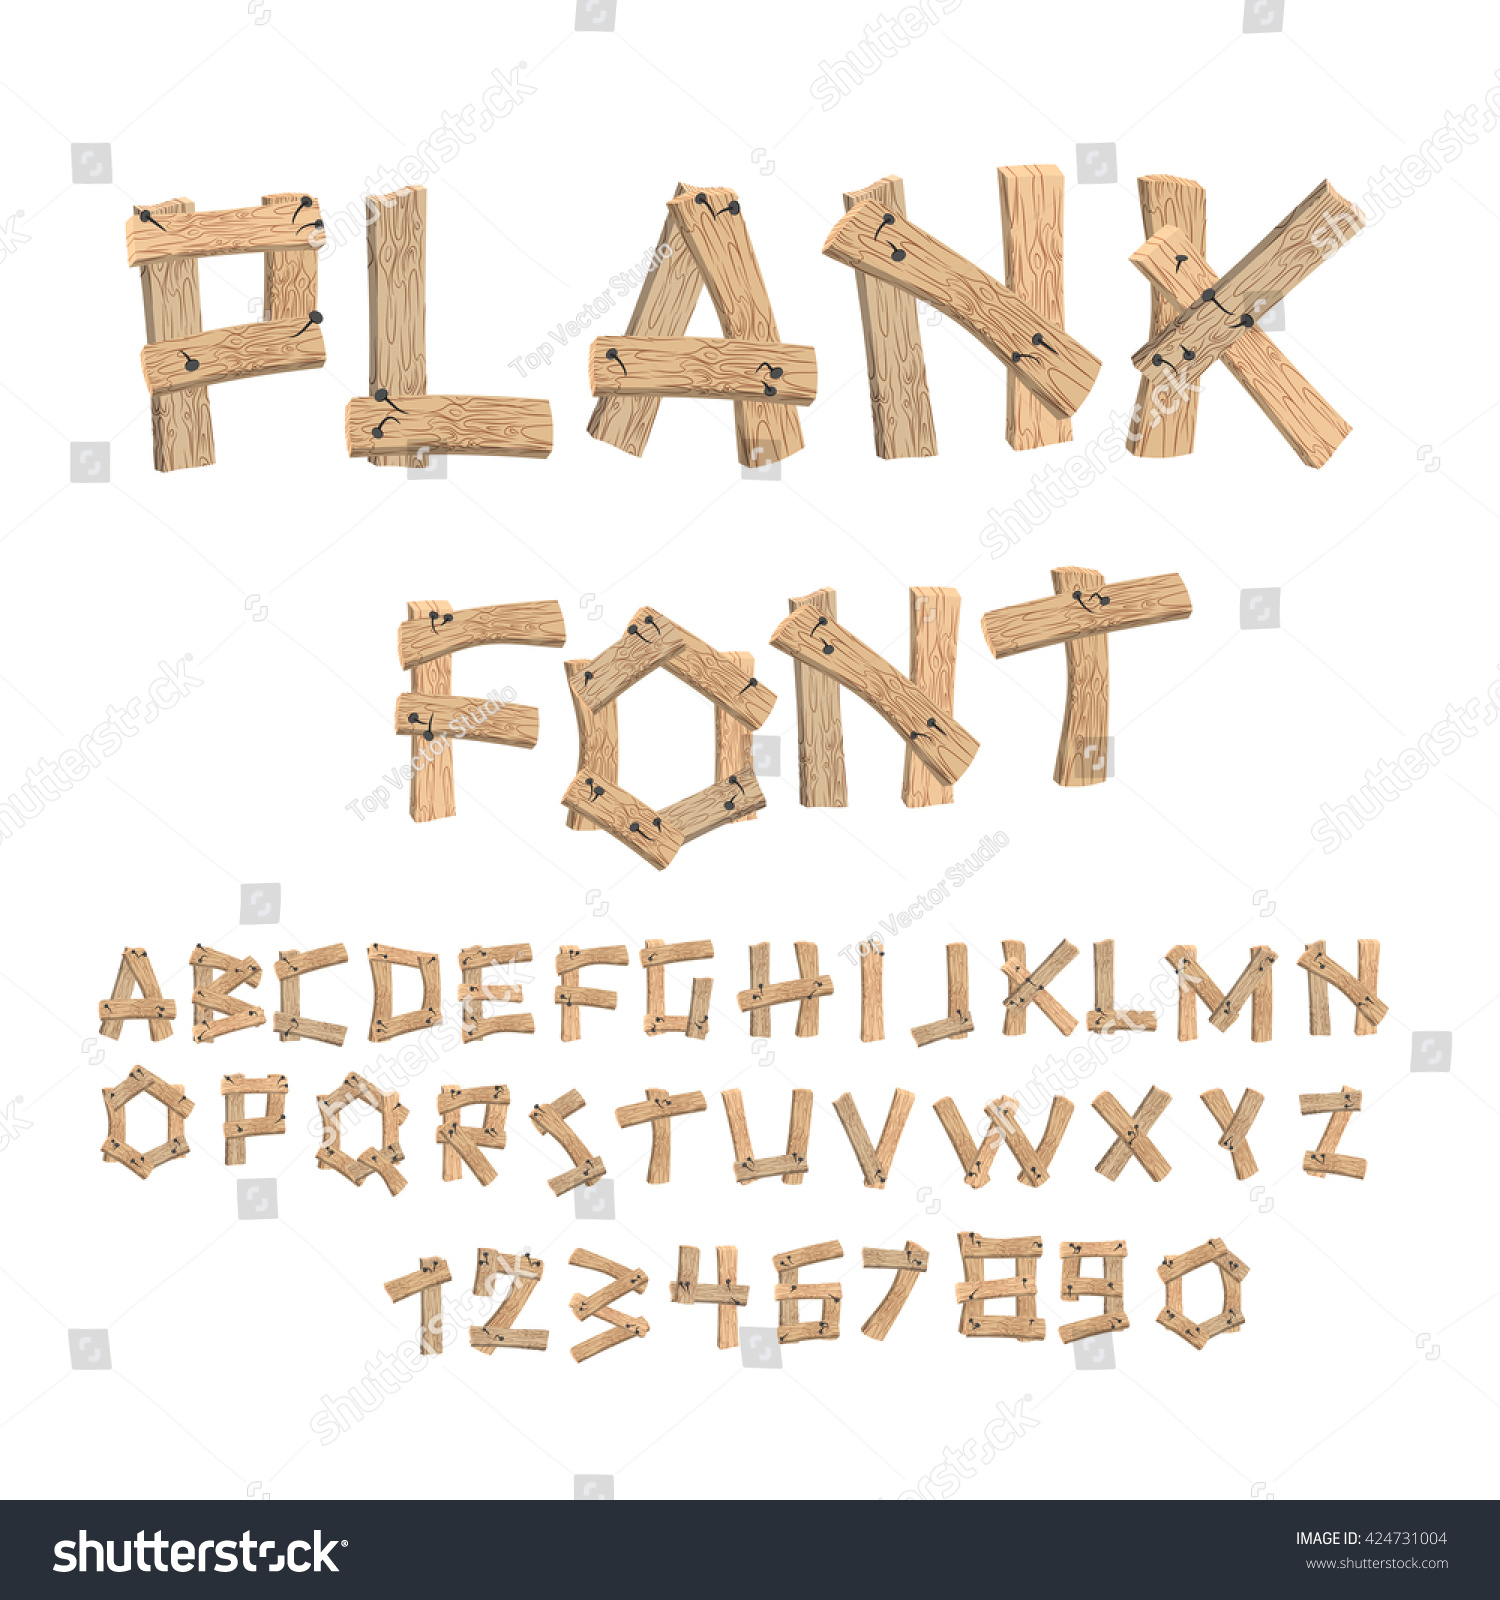 Plank font wooden table alphabet old boards with nails abc letters put together from vintage - Putting together stylish kitchen abcs ...